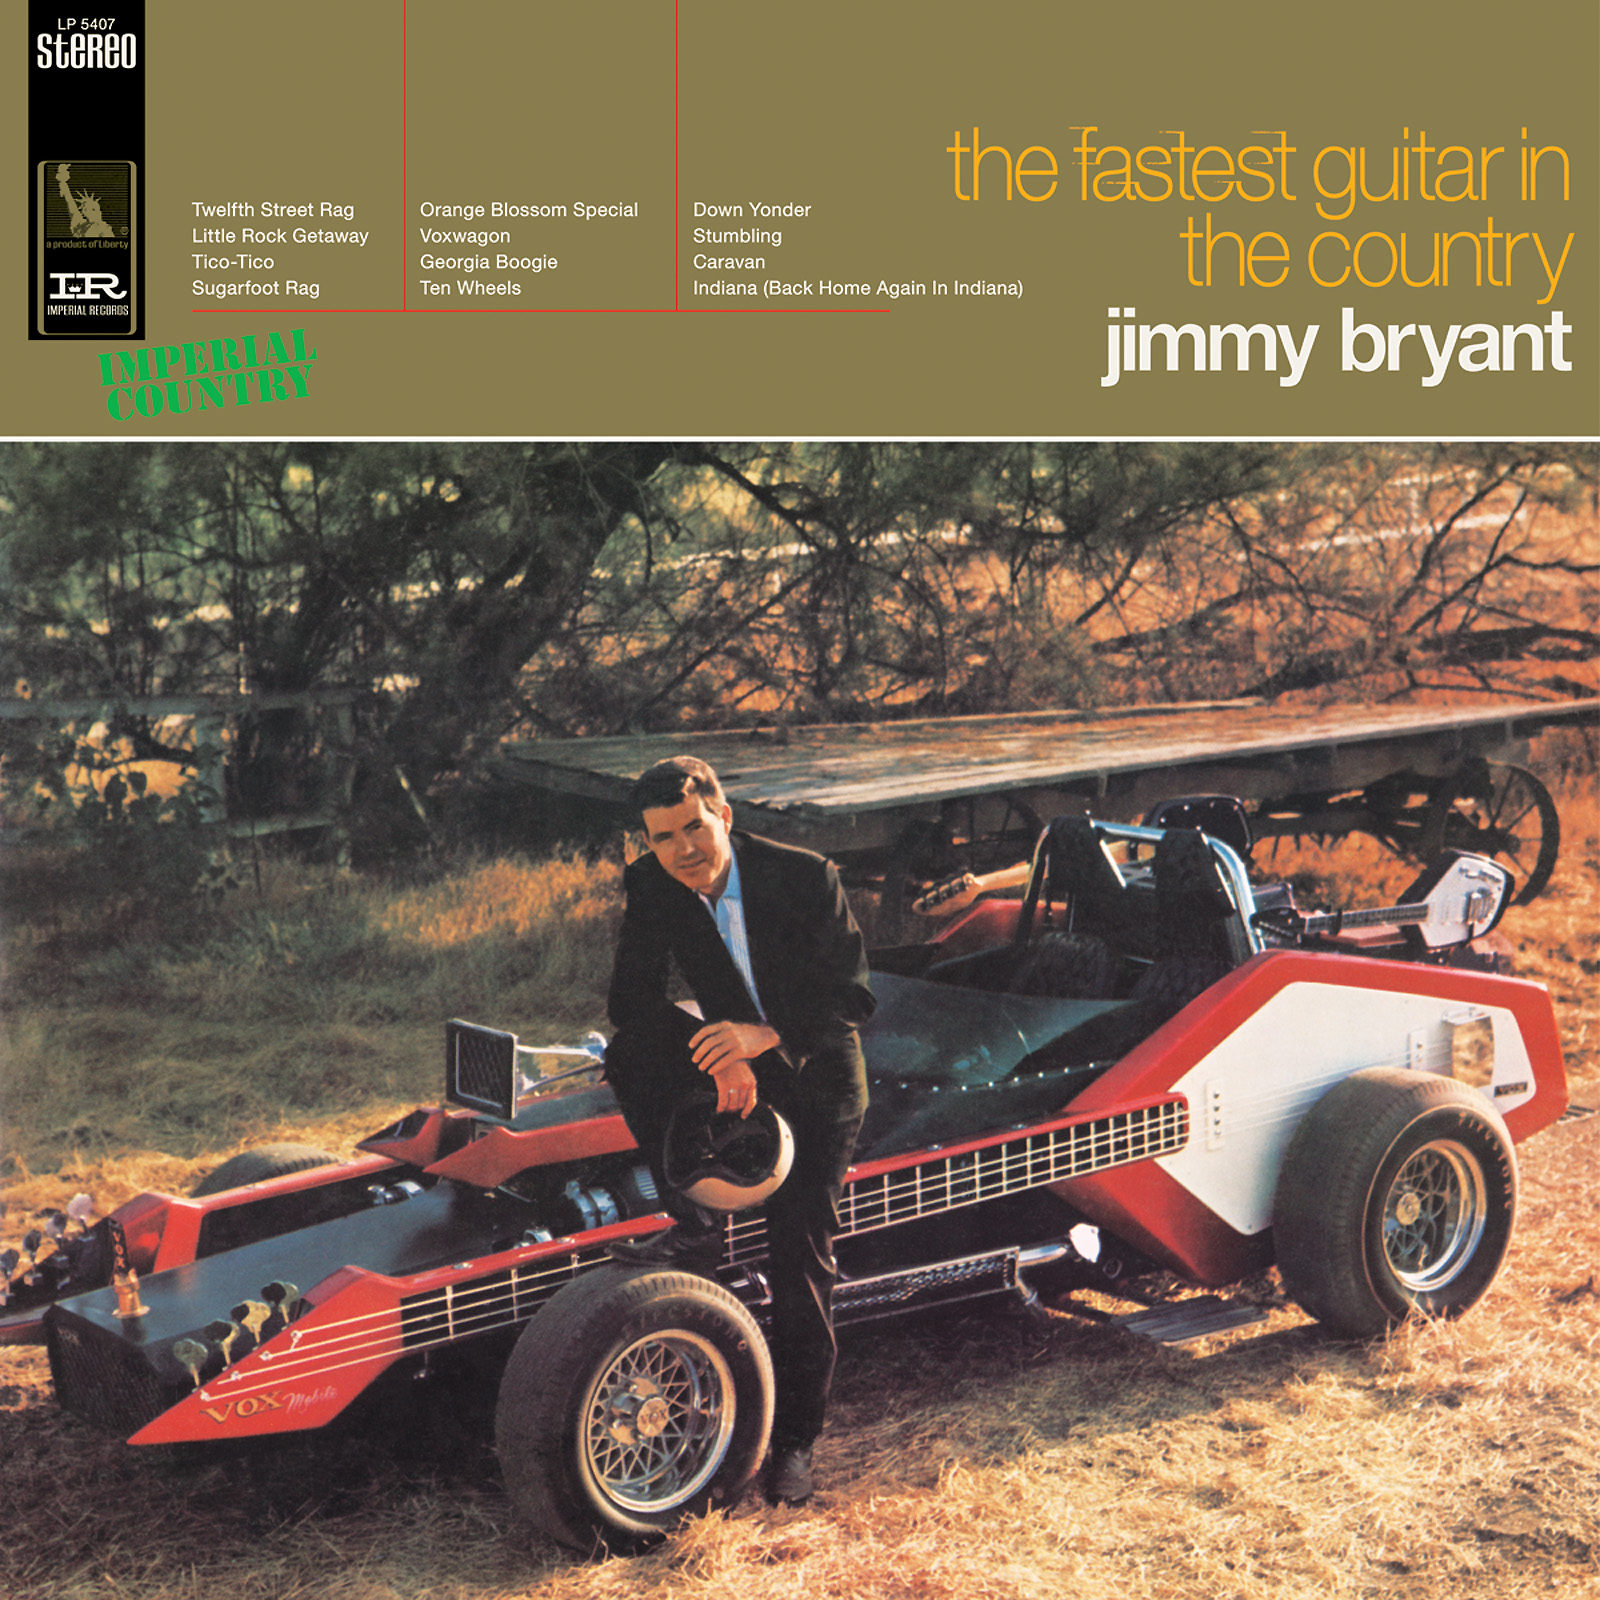 Bryant, Jimmy - The Fastest Guitar in the Country LP